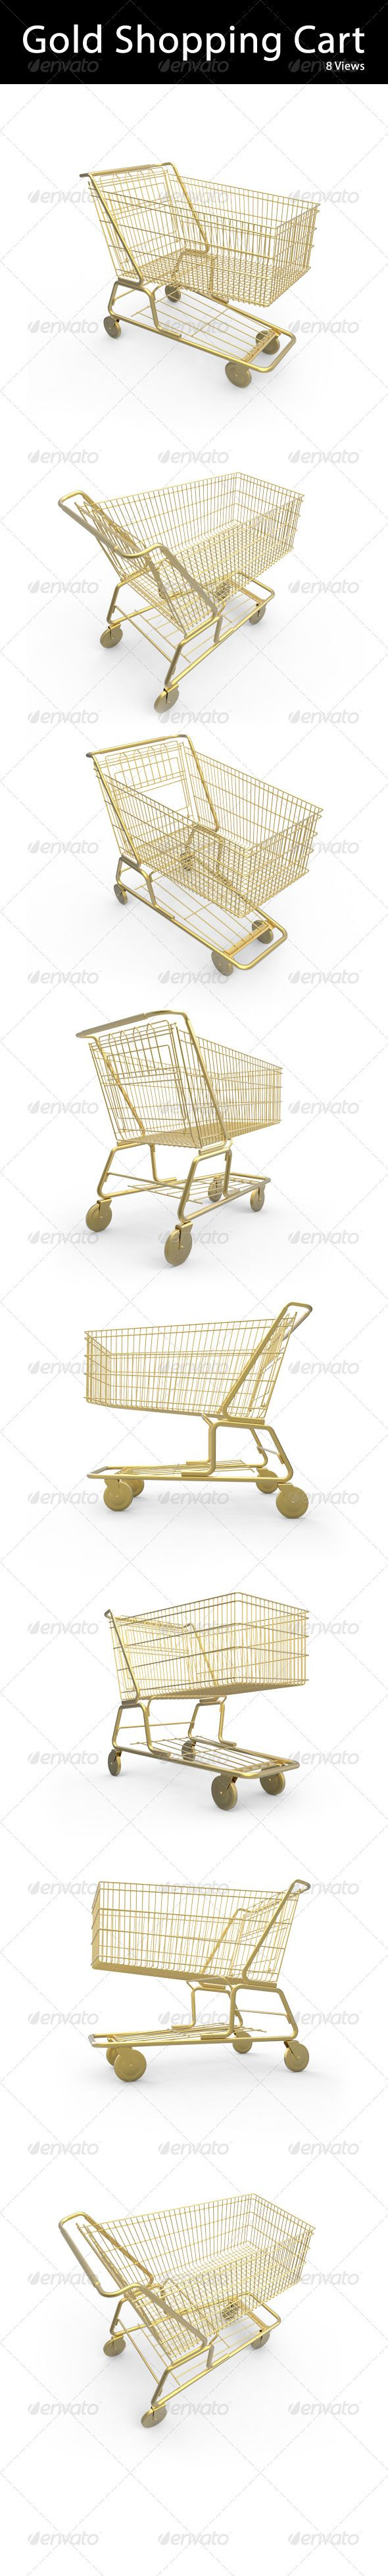 Gold Shopping Cart Concept by Amahiwal